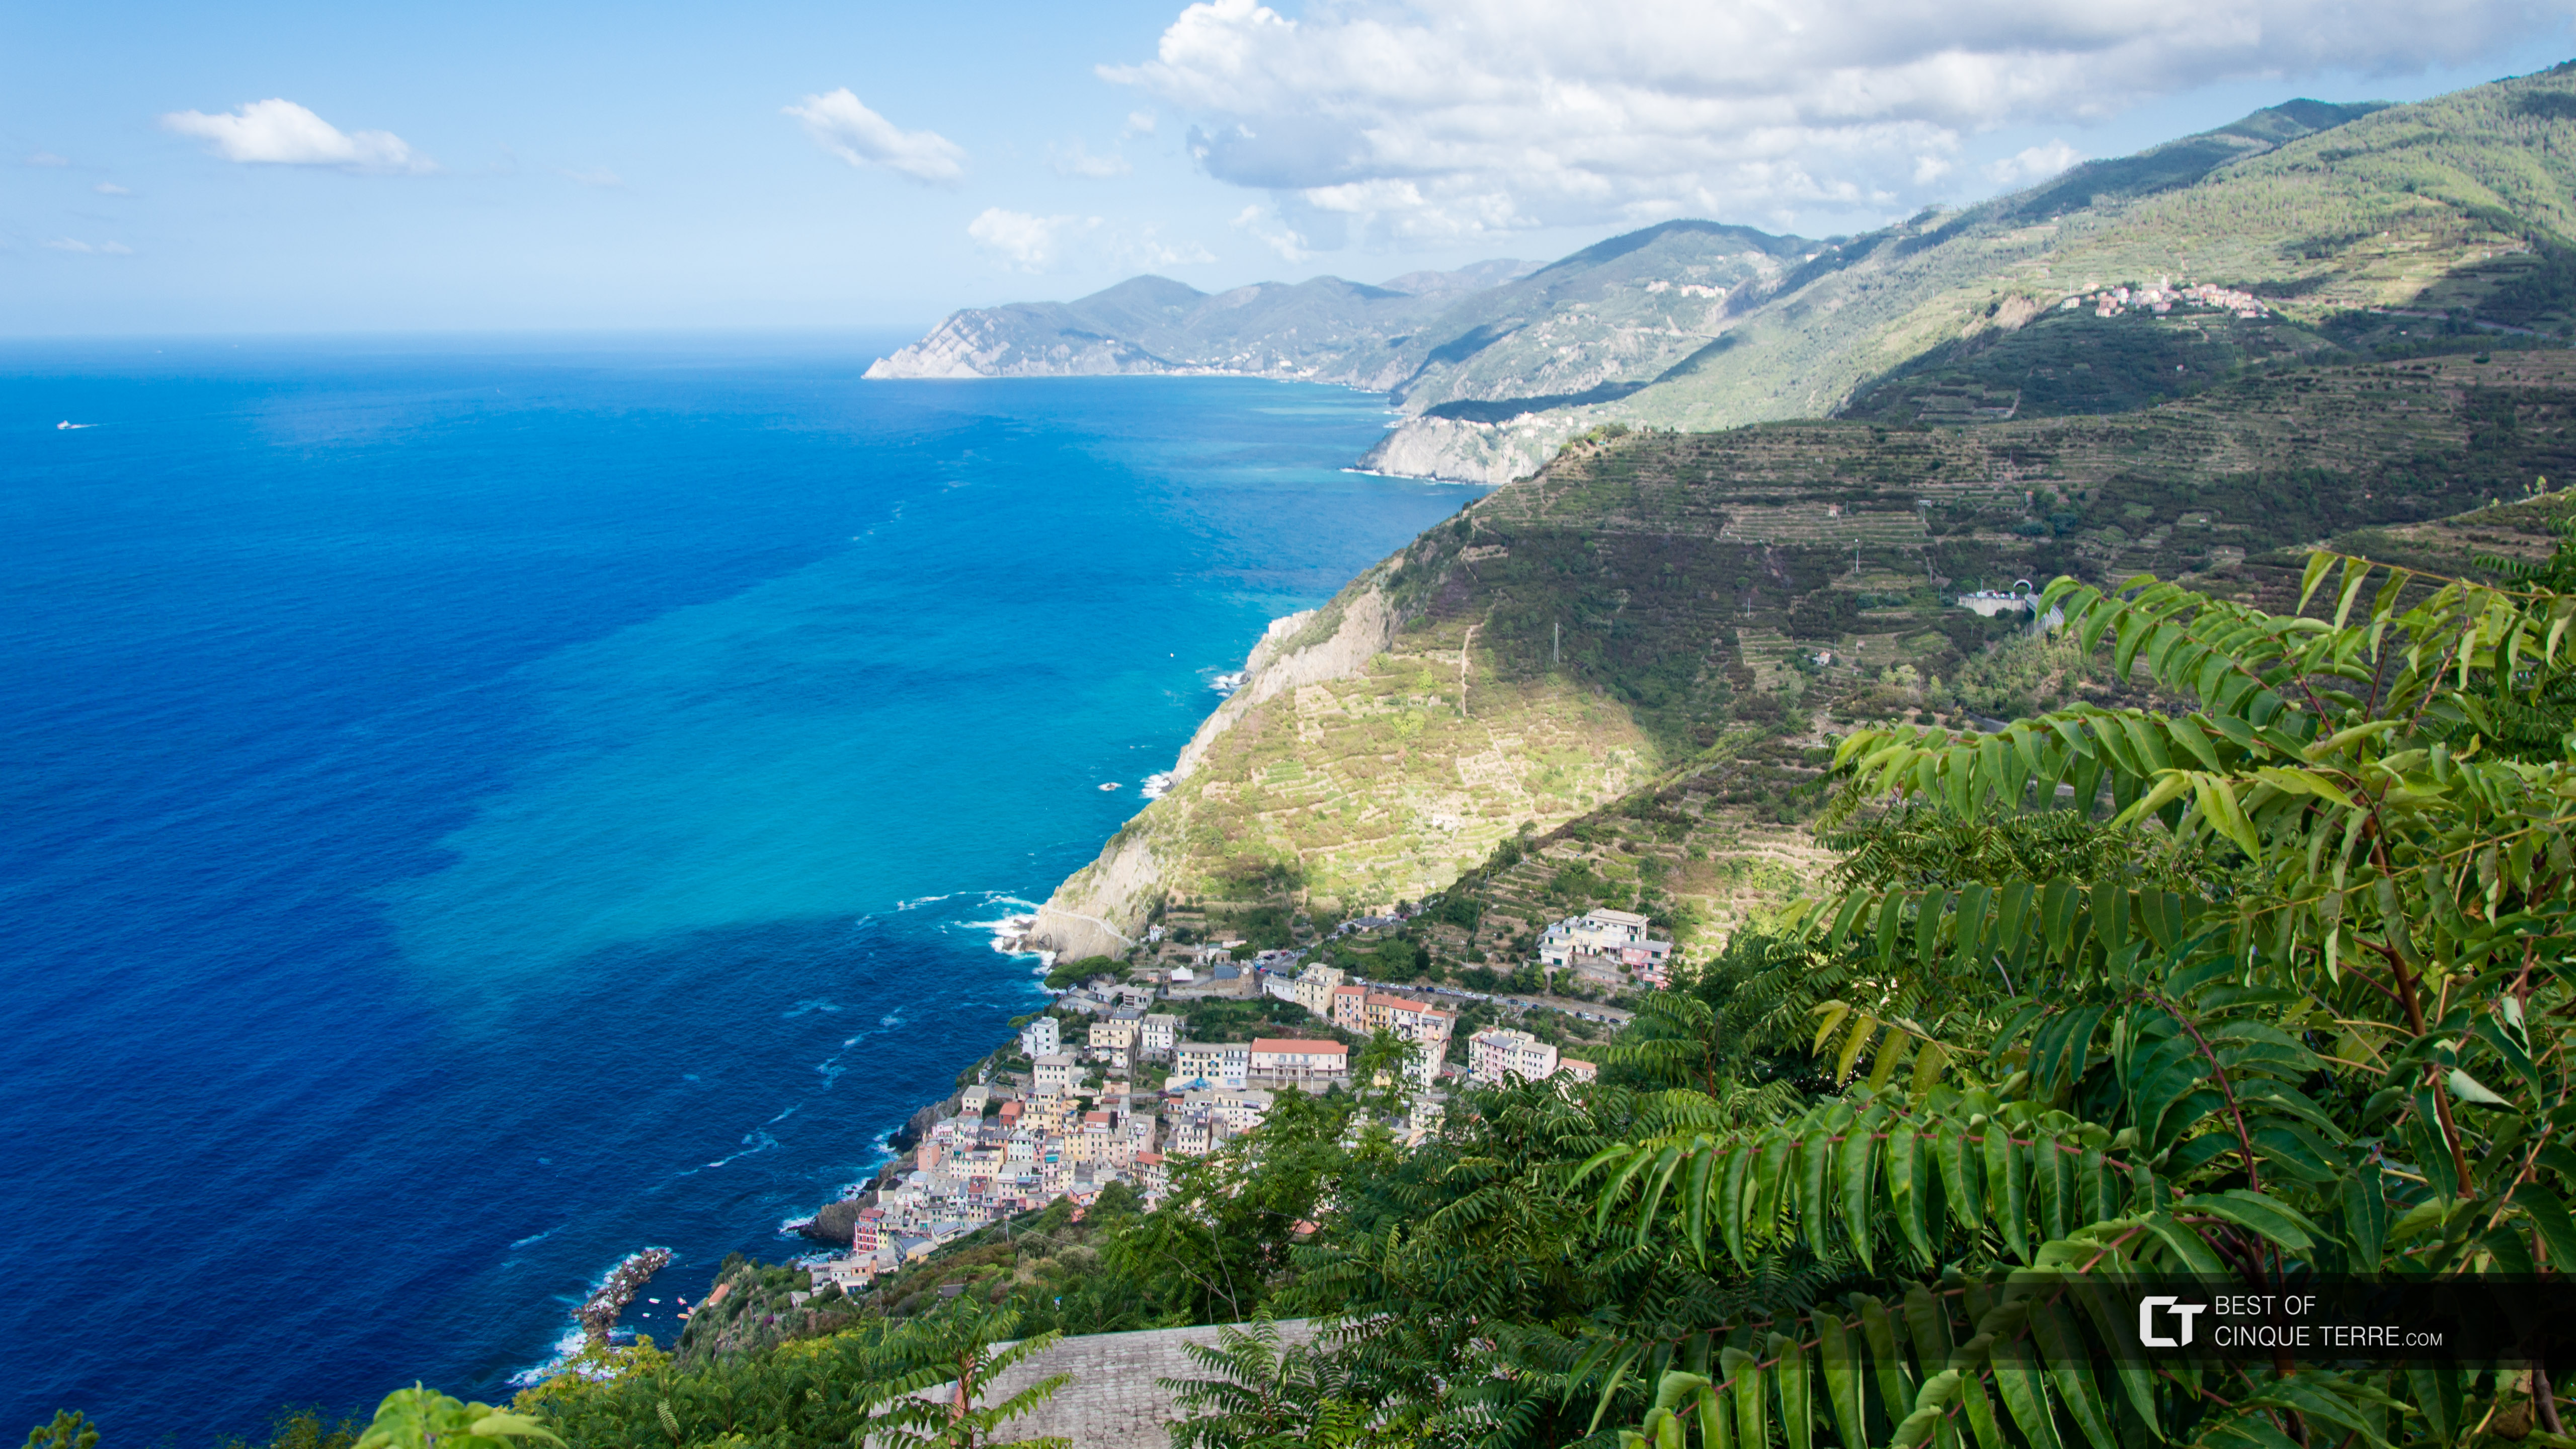 View of the Riviera from the Sanctuary of Montenero, Trails, Cinque Terre, Italy